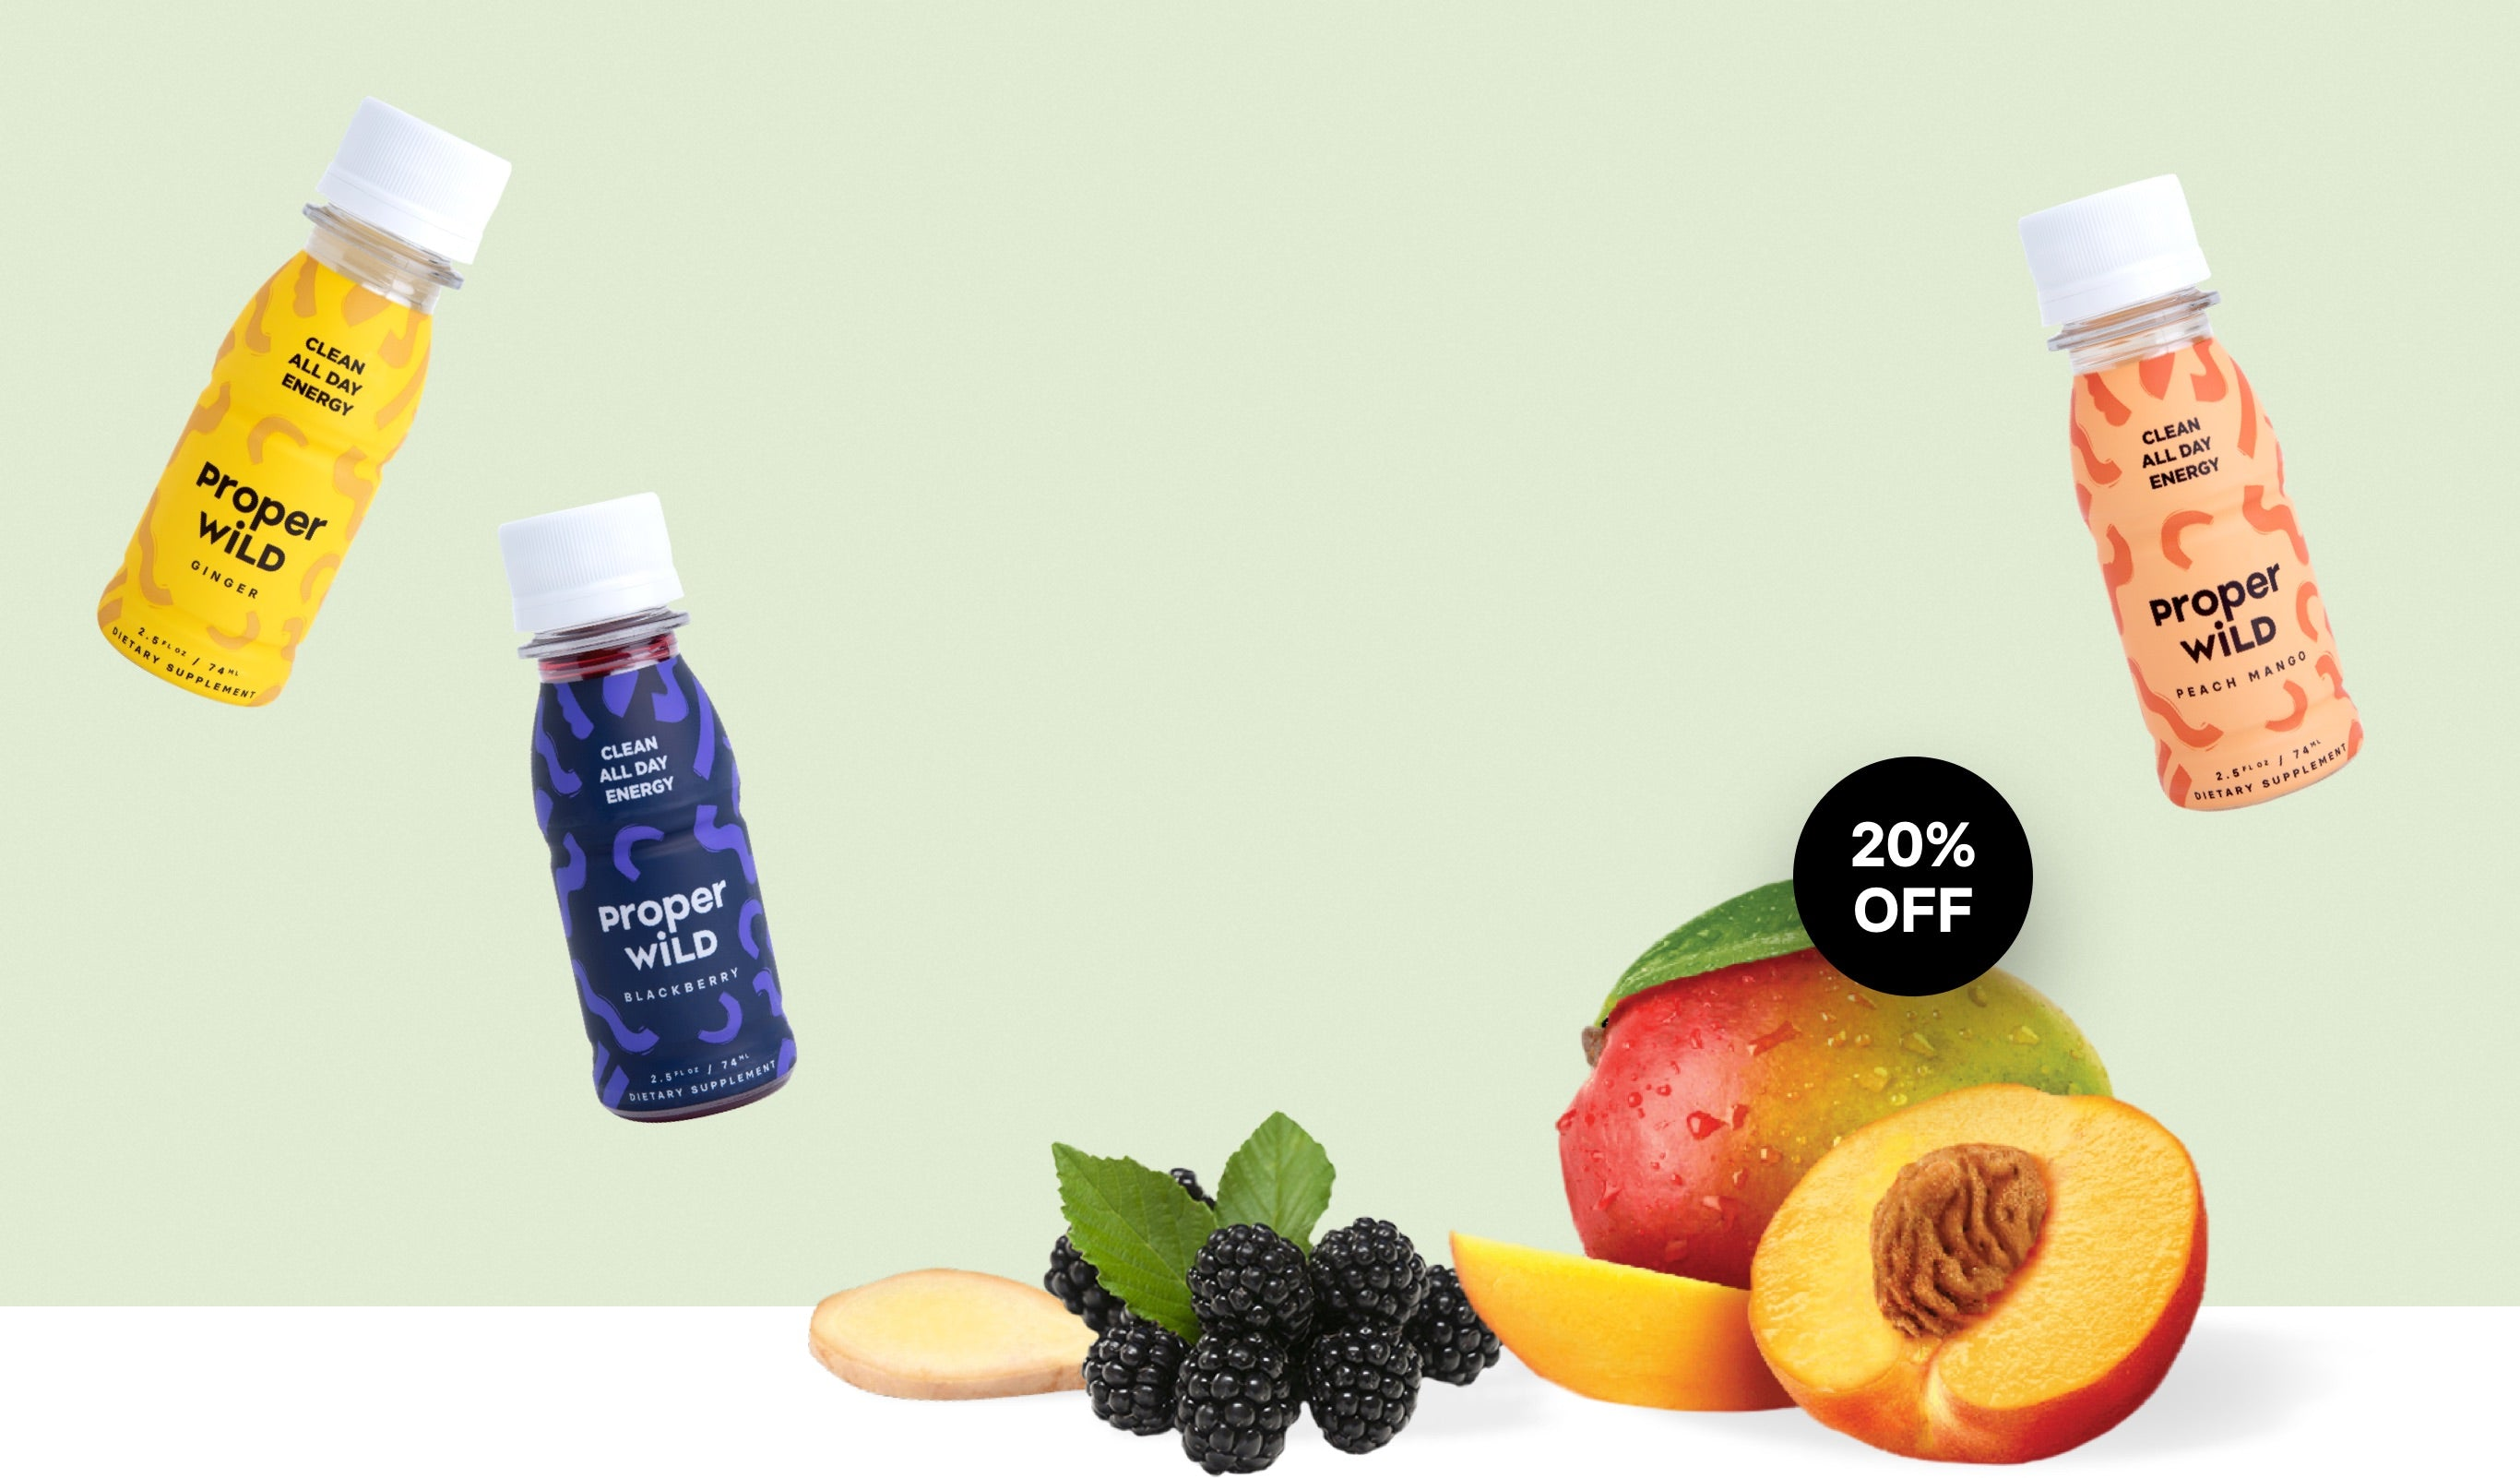 Proper Wild's clean energy shots with clean ingredients like peaches, mangoes, blackberries and ginger